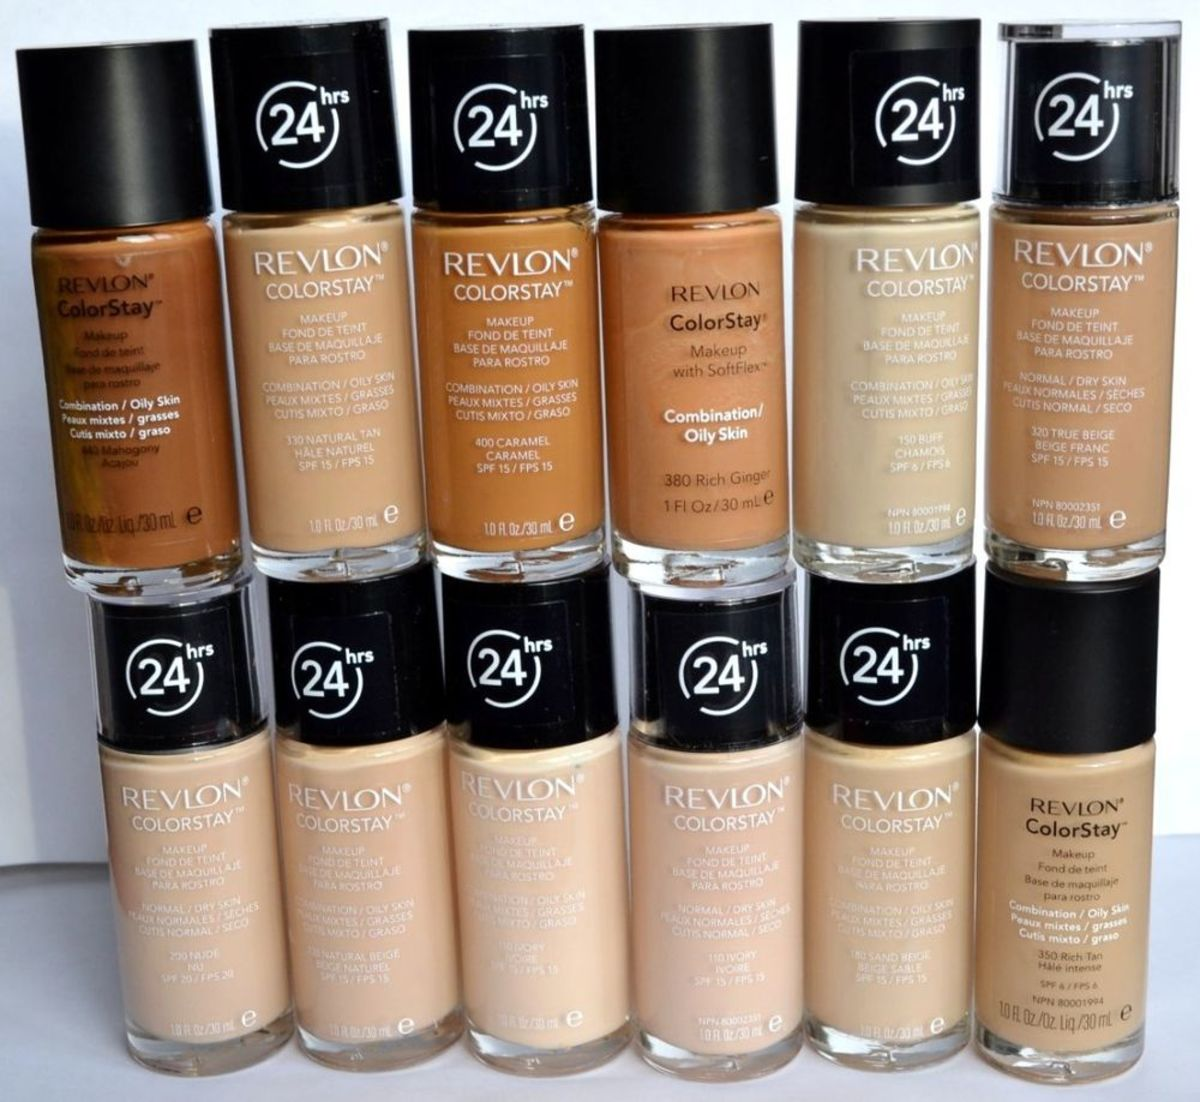 Revlon ColorStay Review: Best Foundation for Oily/Acne-Prone Skin